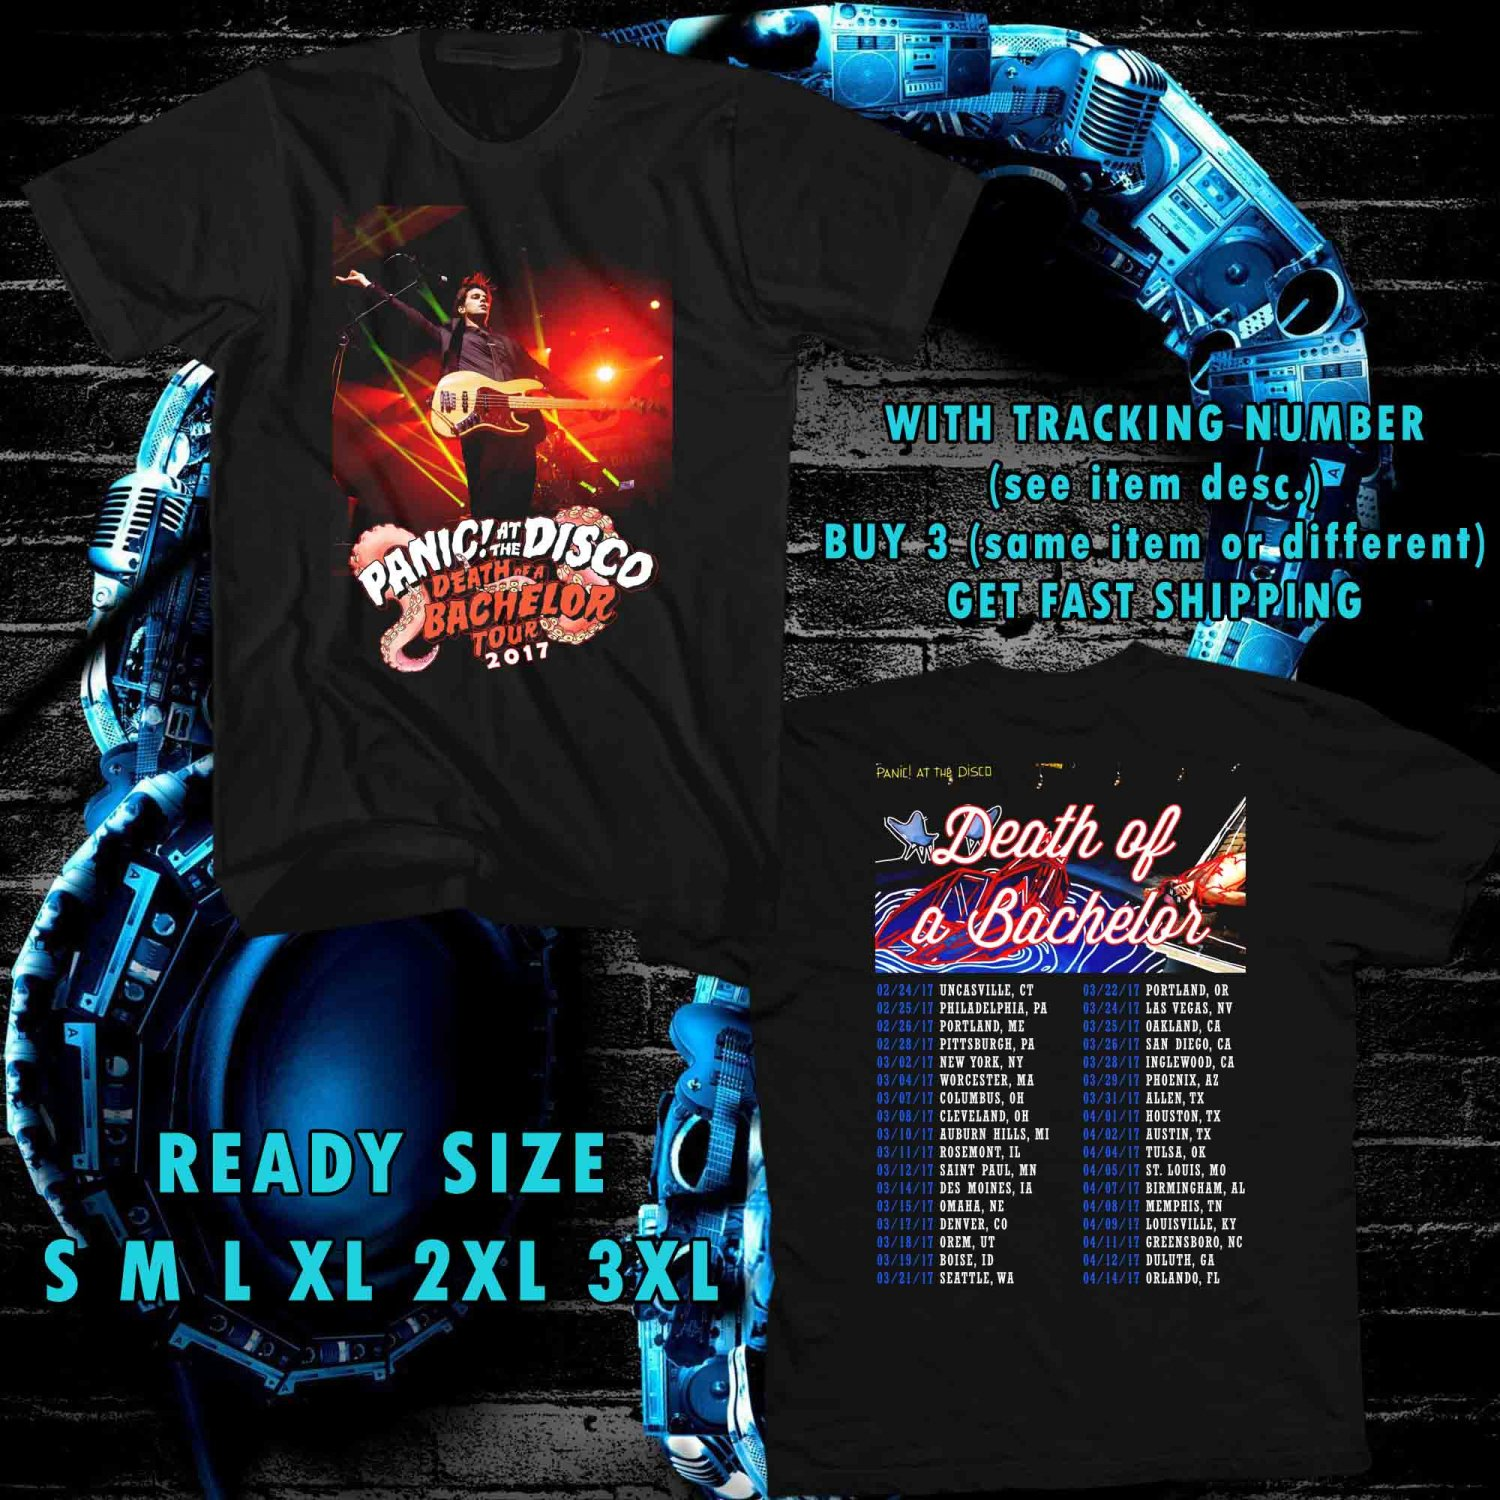 WOW PANIC AT THE DISCO DEATH OF BACHELOR TOUR 2017 BLACK TEE S-3XL ASTR 887